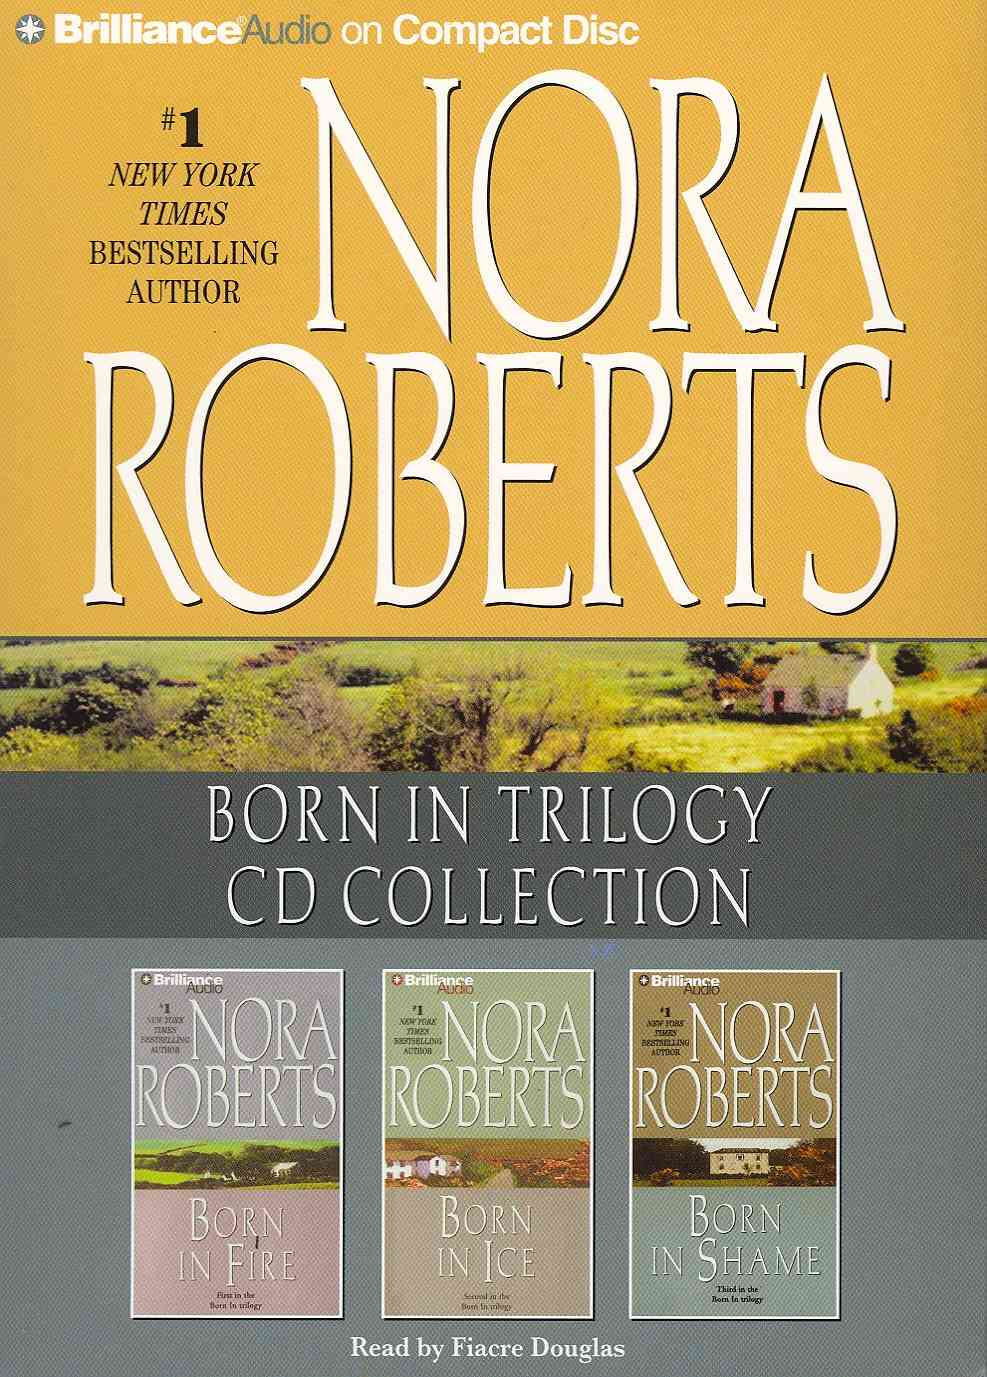 Nora Roberts Born in Trilogy CD Collection: Born in Fire / Born in Ice / Born in Shame (CD-Audio)